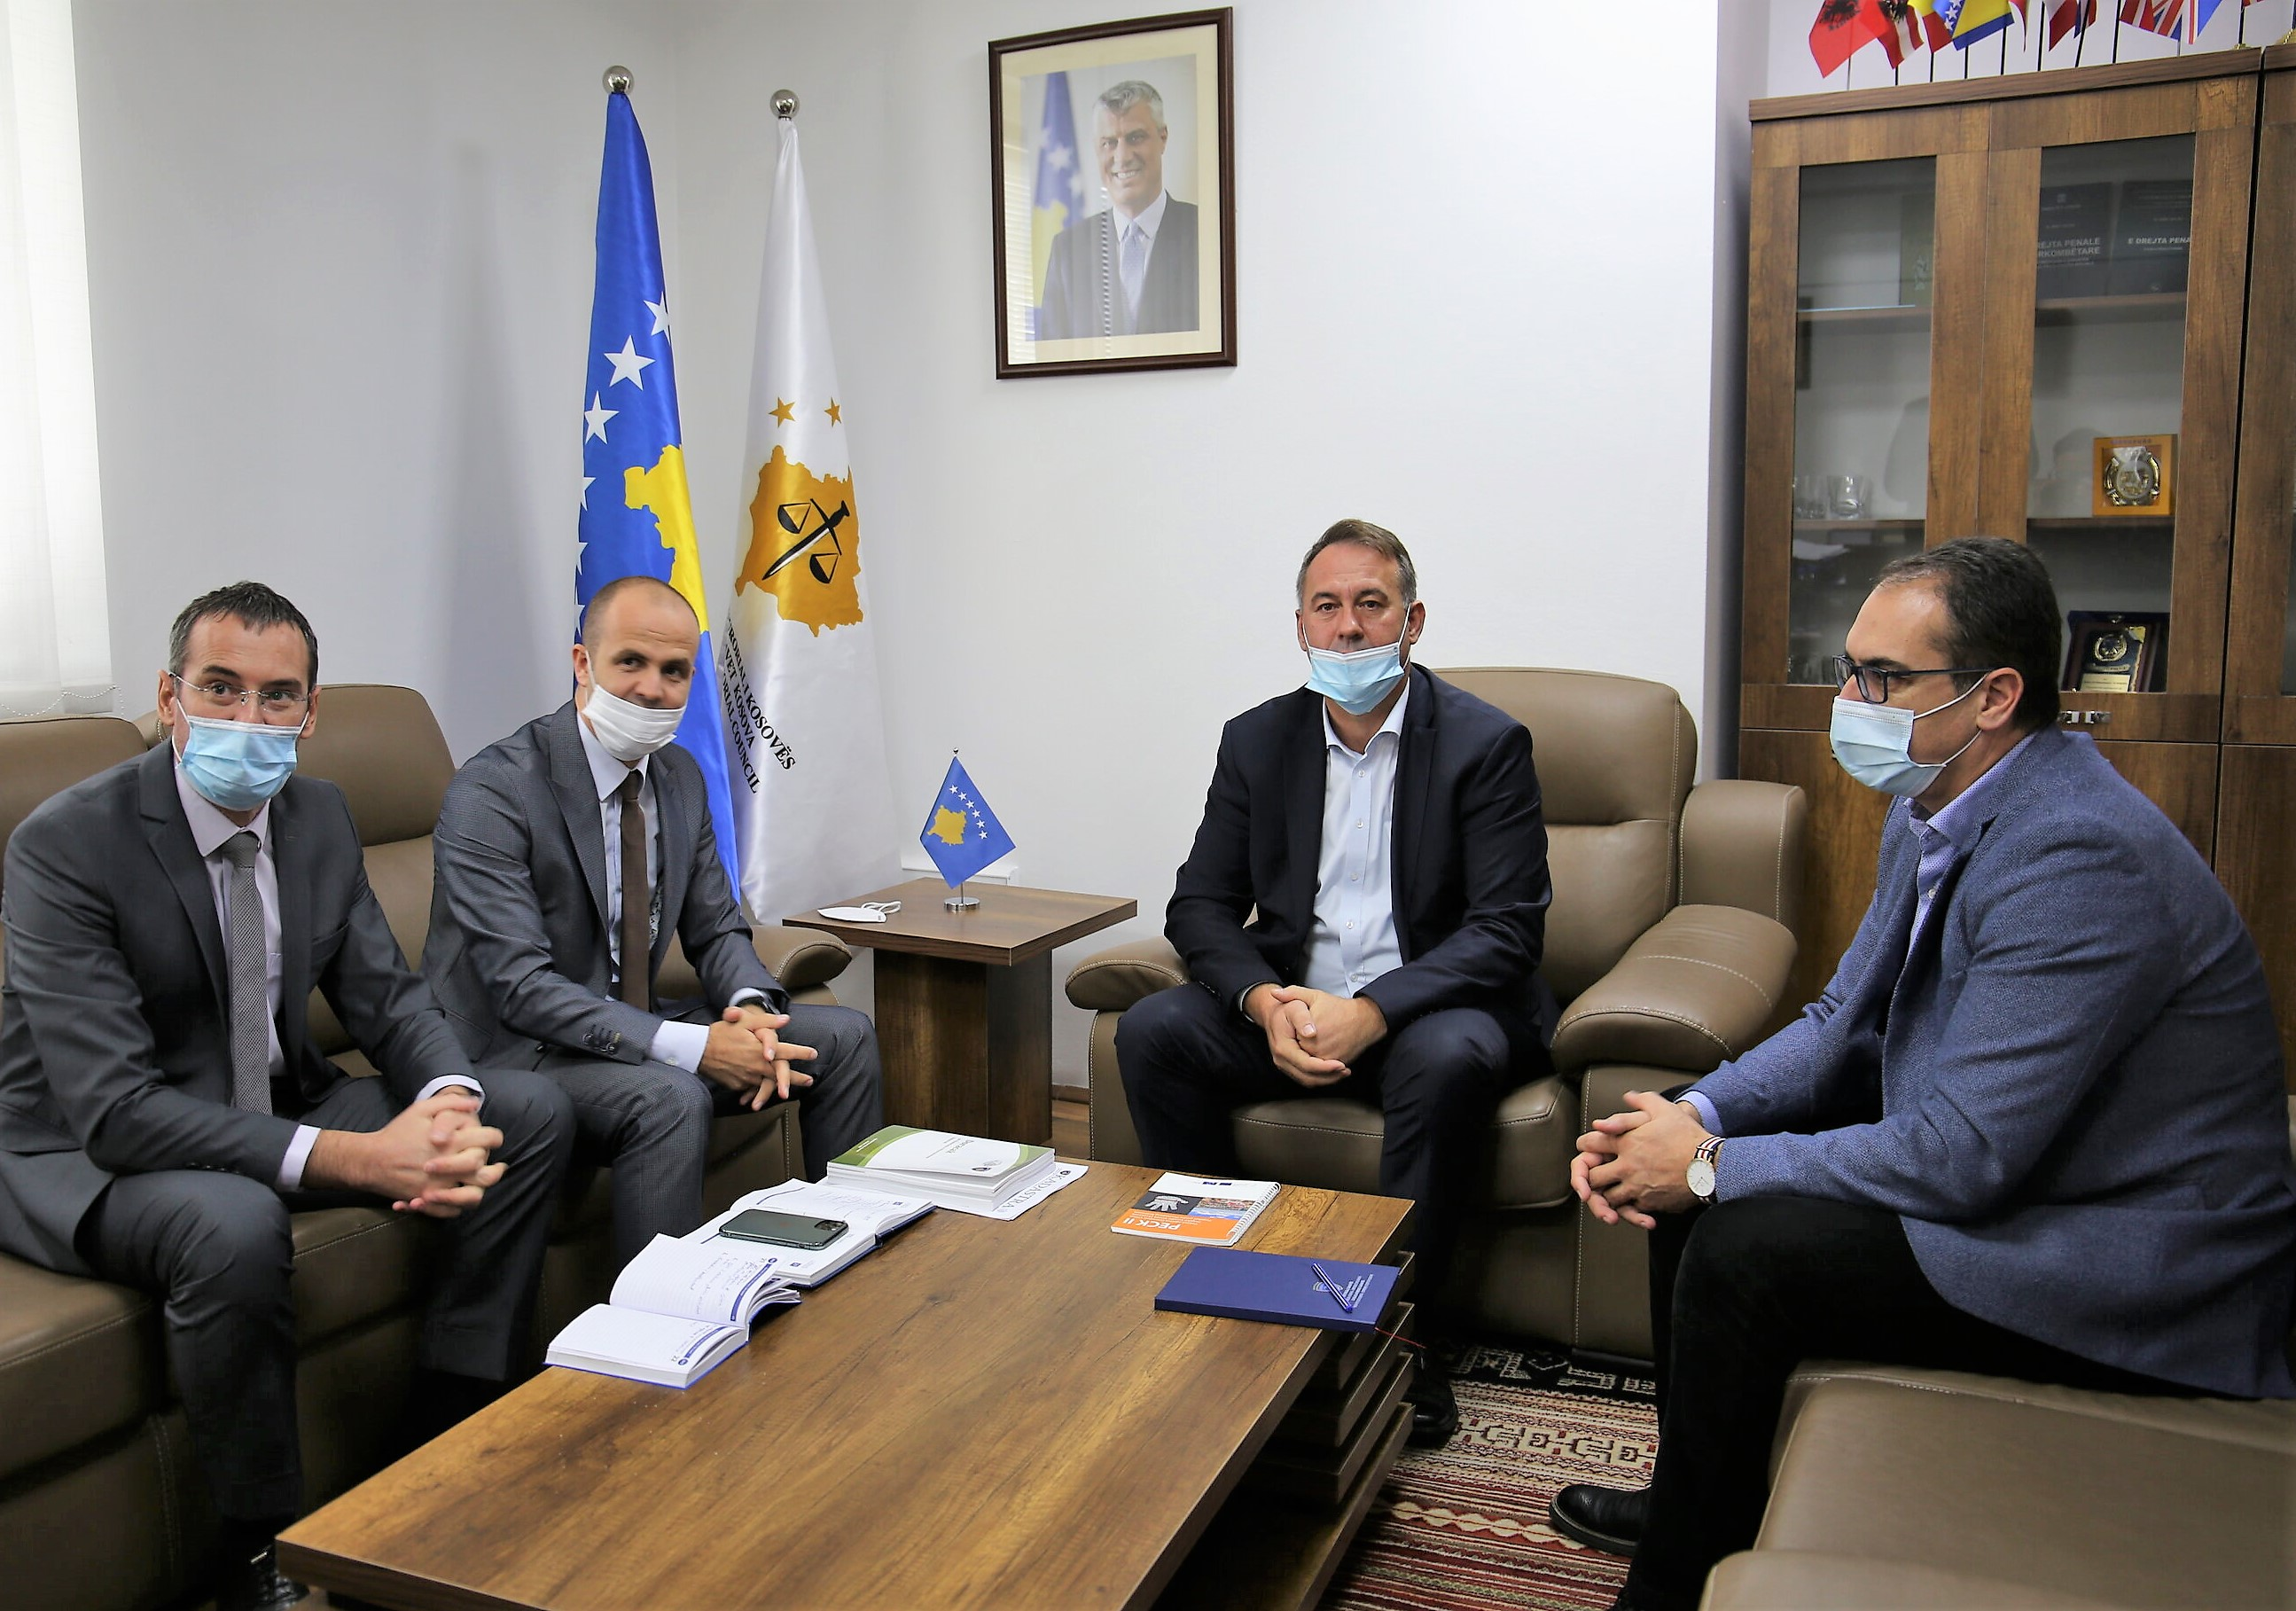 Chairman Hyseni received in a meeting the Chief Executive Officer of KCA, Mr. Ahmeti